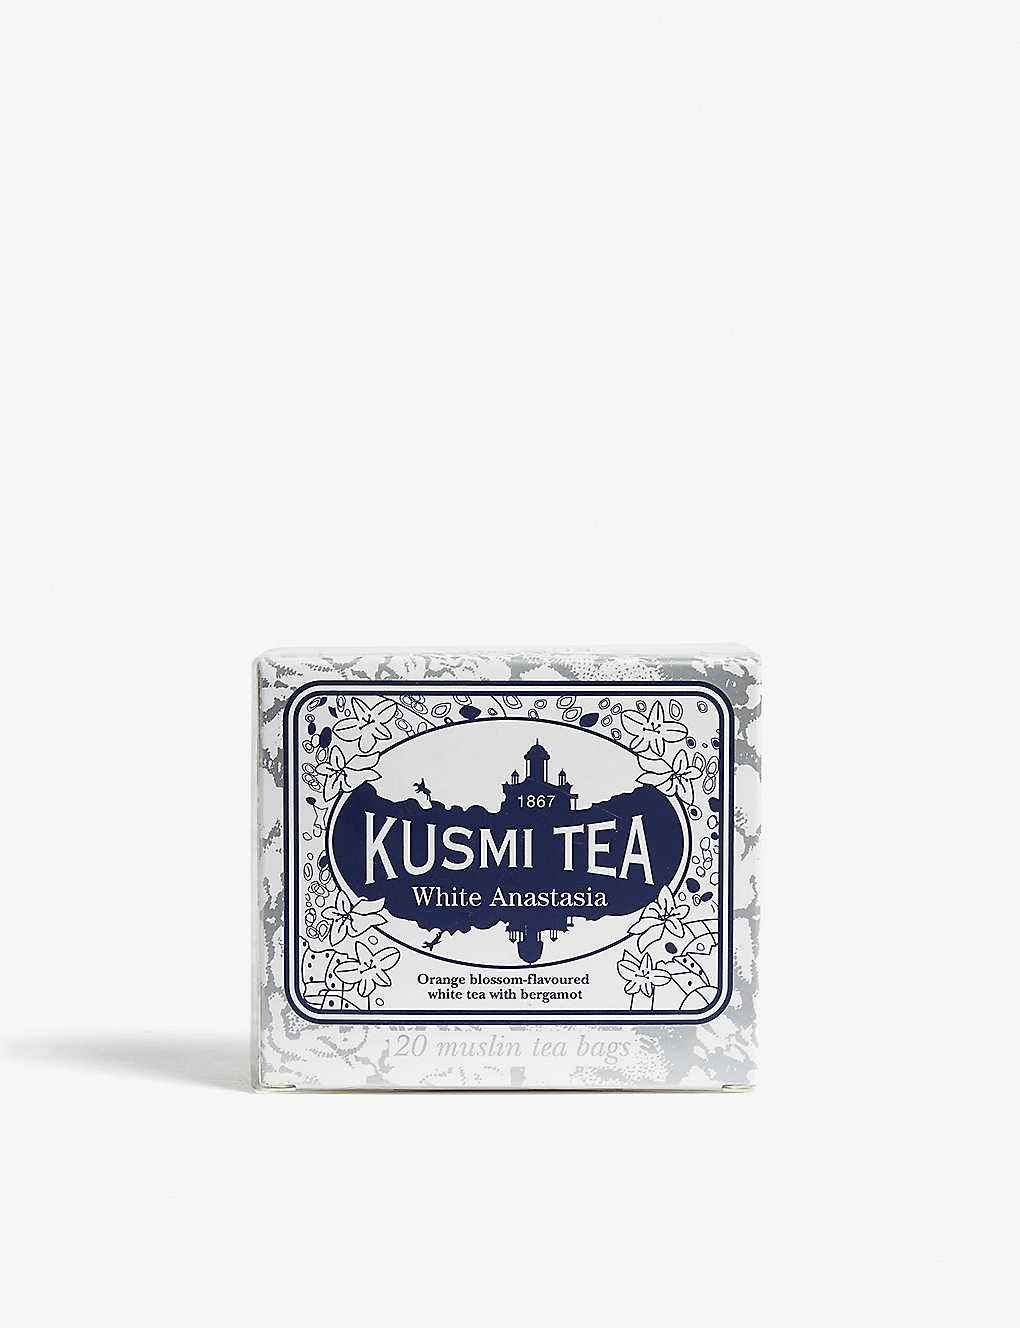 KUSMI TEA: White anastasia tea 40g box of 20